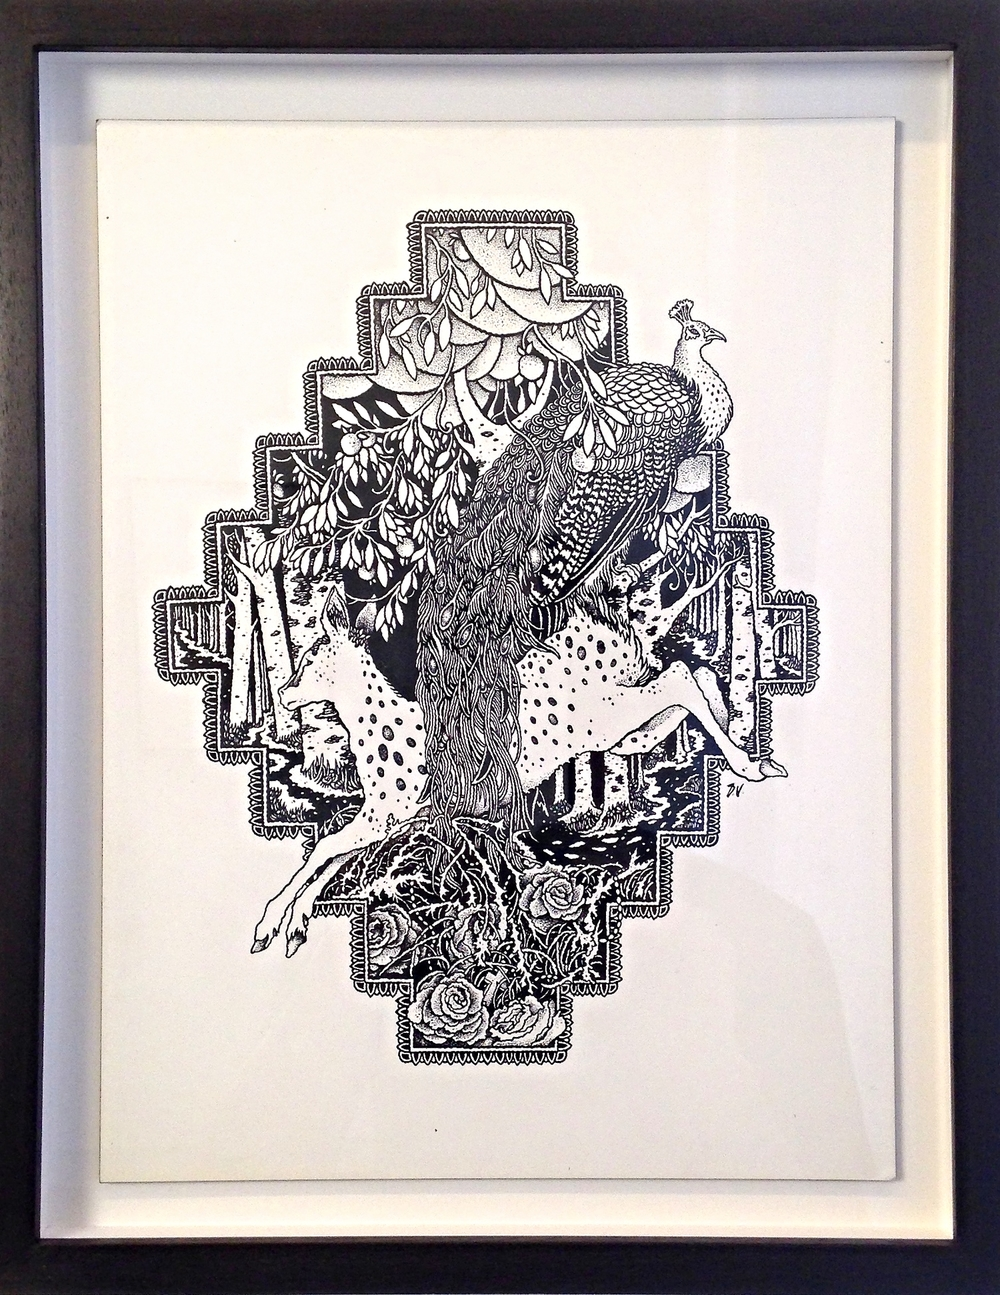 WOVEN HAND   India Ink on Wood Panel Framed 14 1/4 x 11 1/4  $1300  Unframed 12x9 $1200 Woven Hand at Roadburn Festival, Holland.